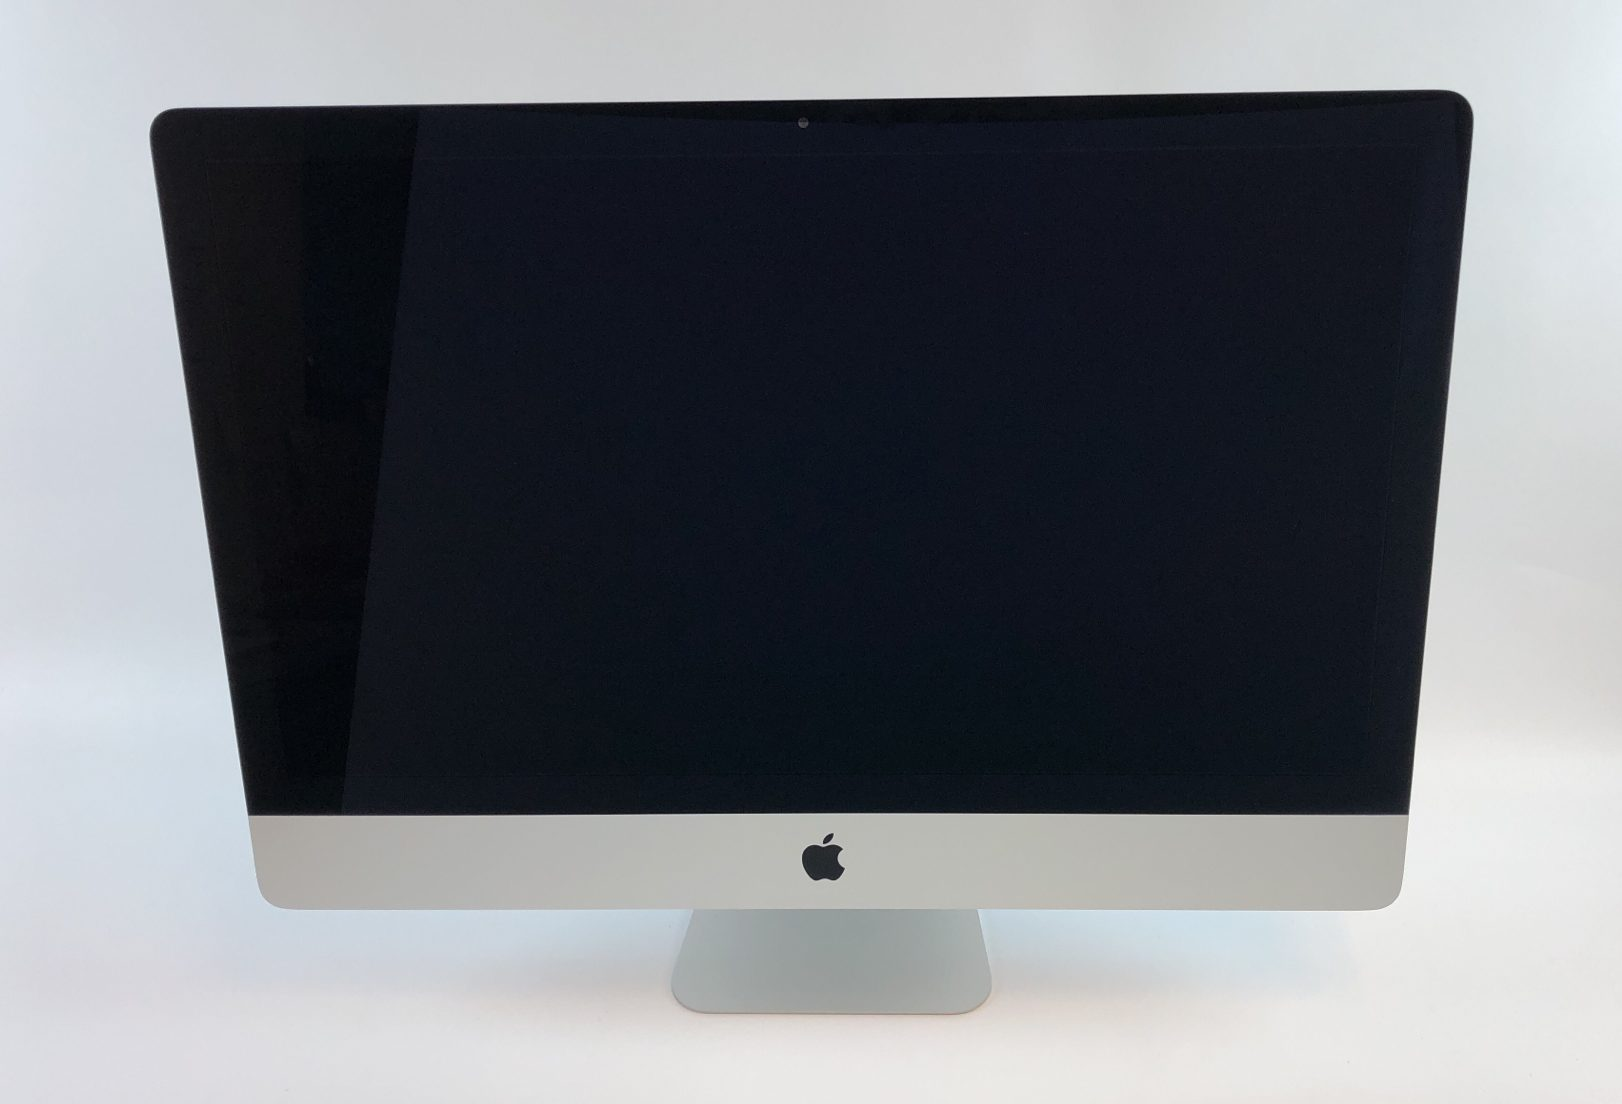 "iMac 27"" Retina 5K Mid 2017 (Intel Quad-Core i5 3.4 GHz 32 GB RAM 1 TB Fusion Drive), Intel Quad-Core i5 3.4 GHz, 40GB (Upgraded from 32), 1 TB Fusion Drive, immagine 1"